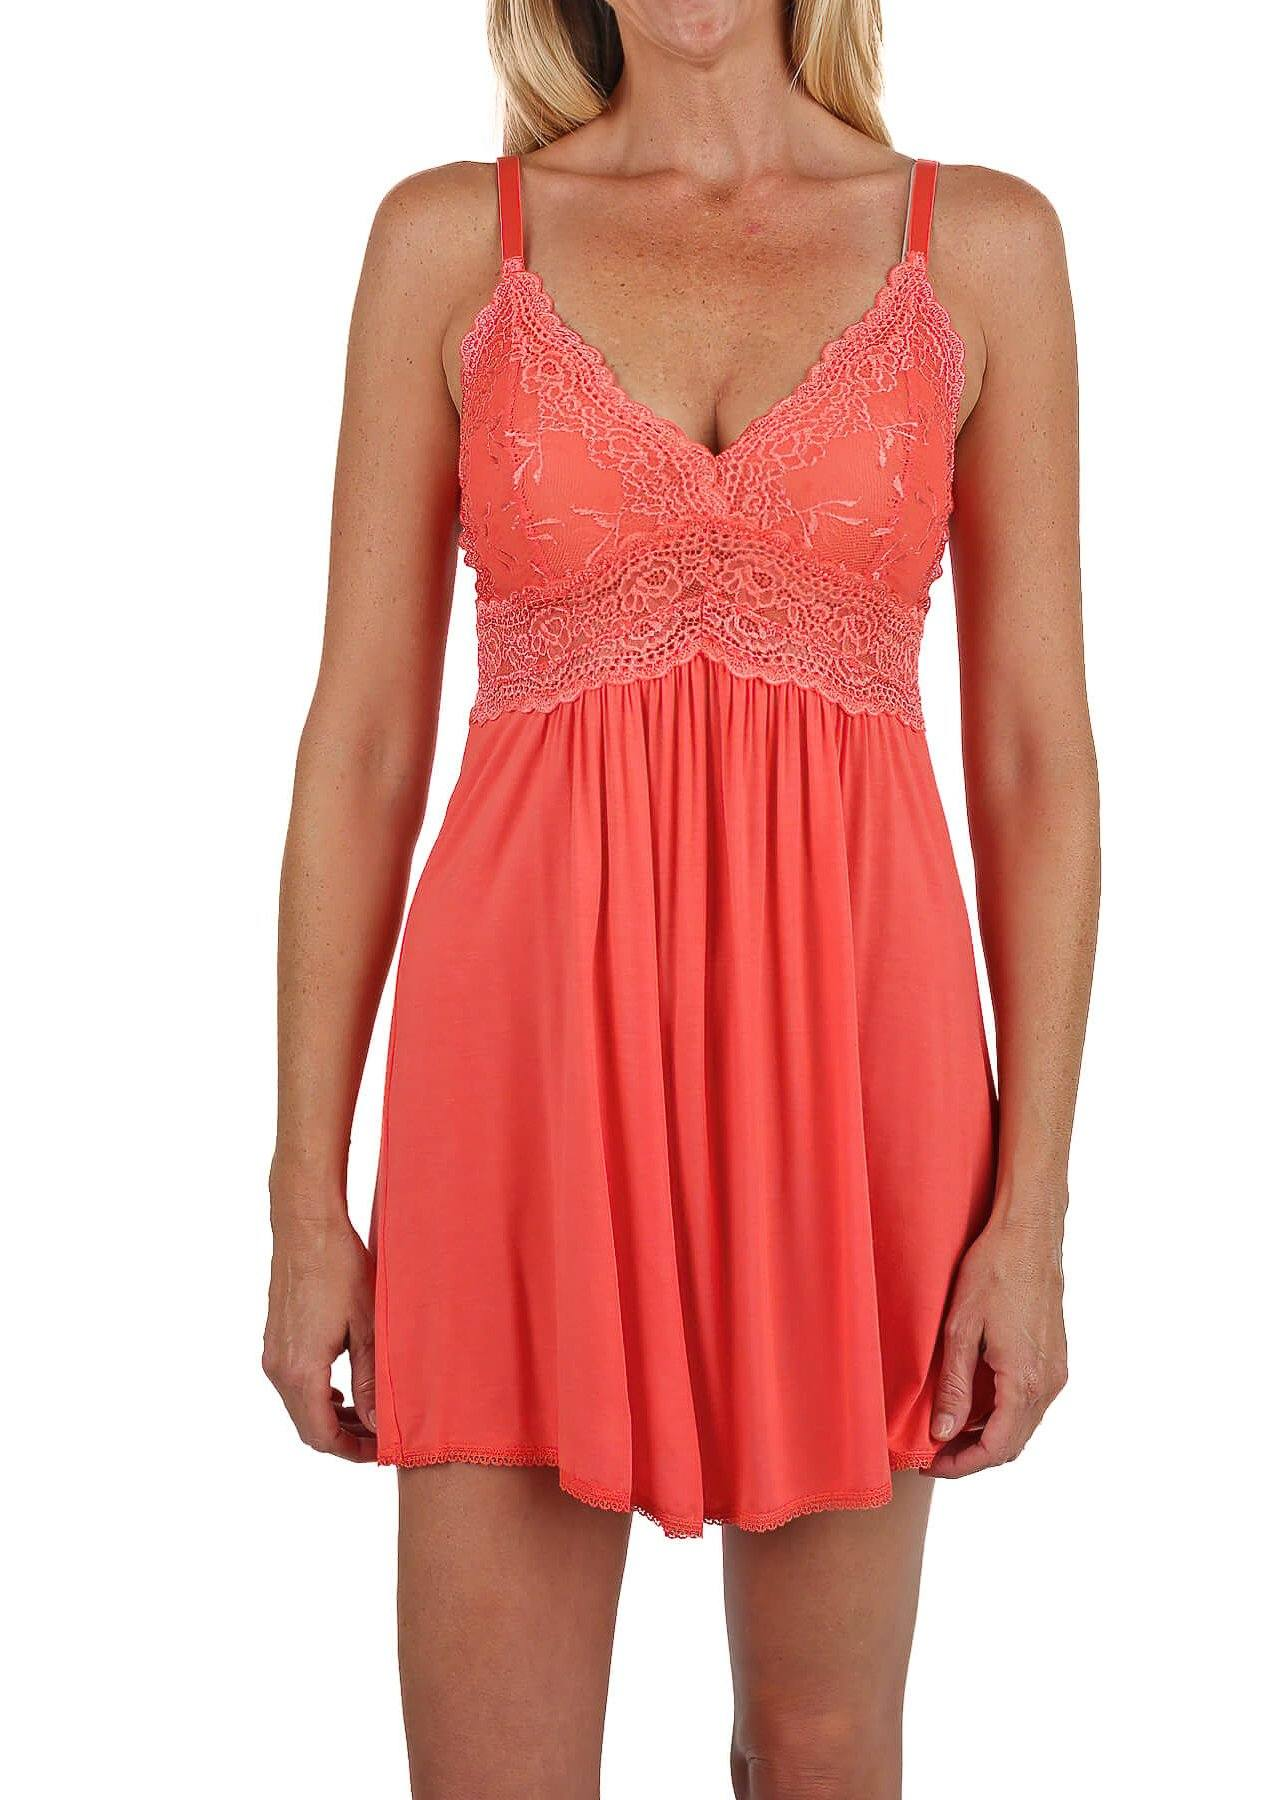 Bliss Persimmon Chemise #21904